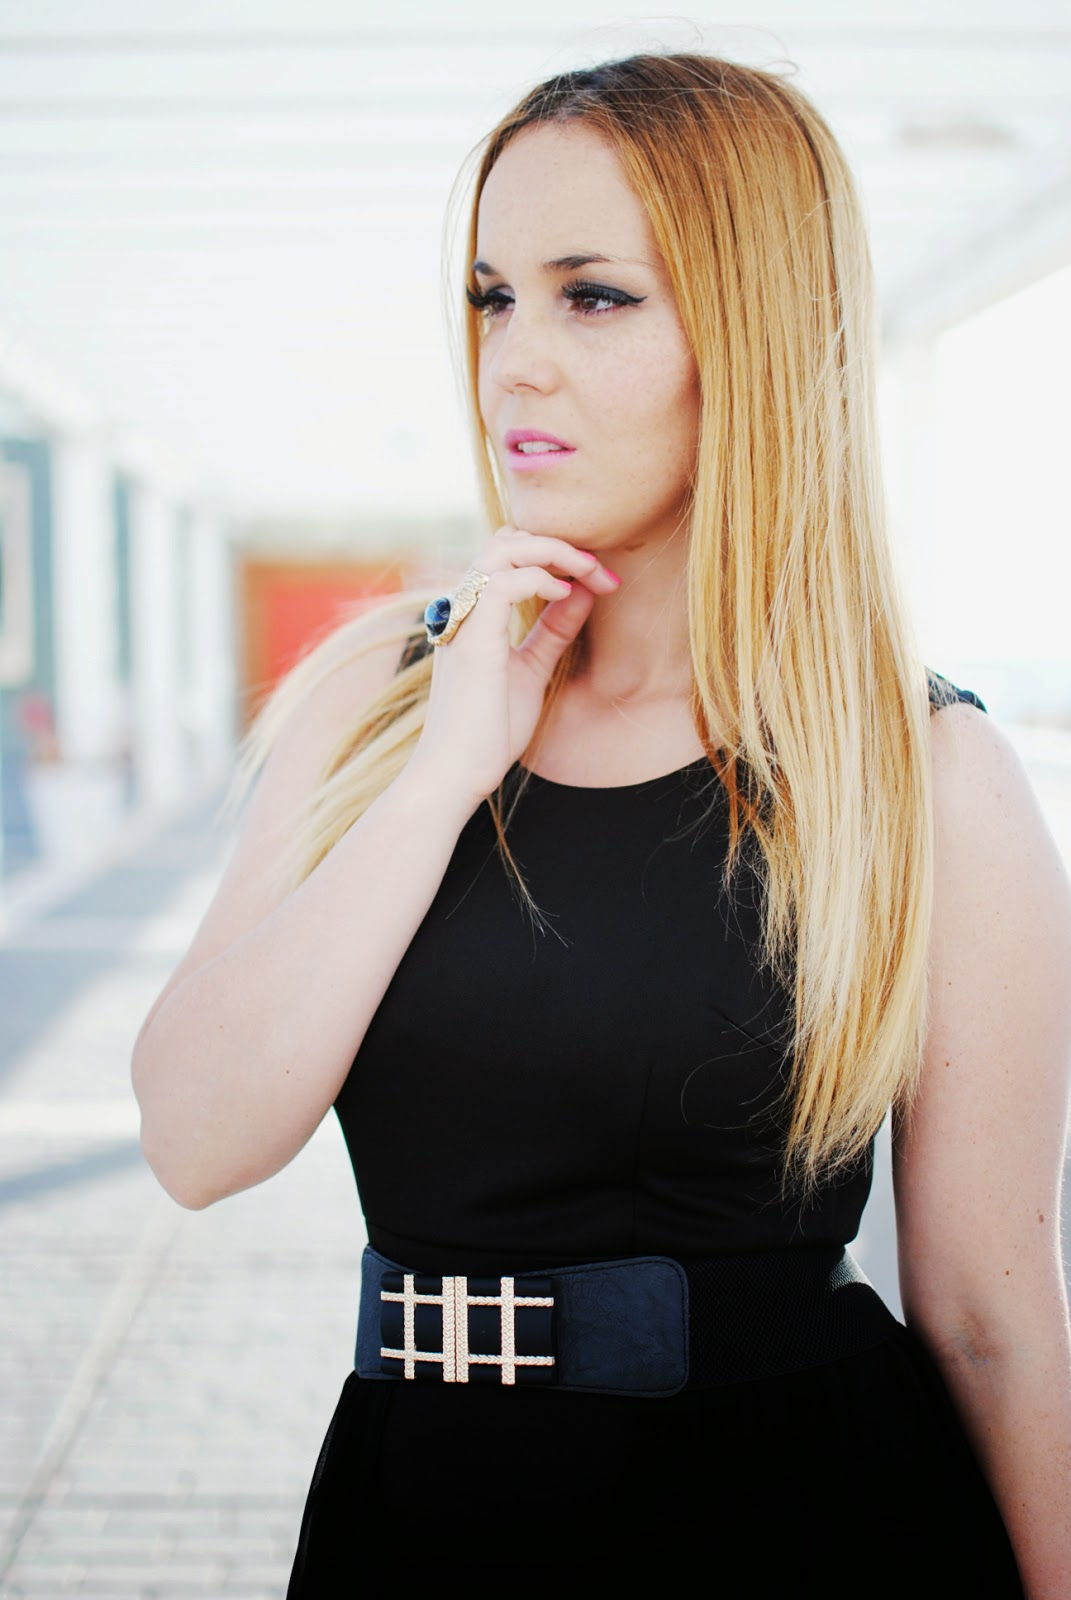 nery hdez, vestido q2, blonde, lbd, little black dress, vestido negro, vestido de fiesta